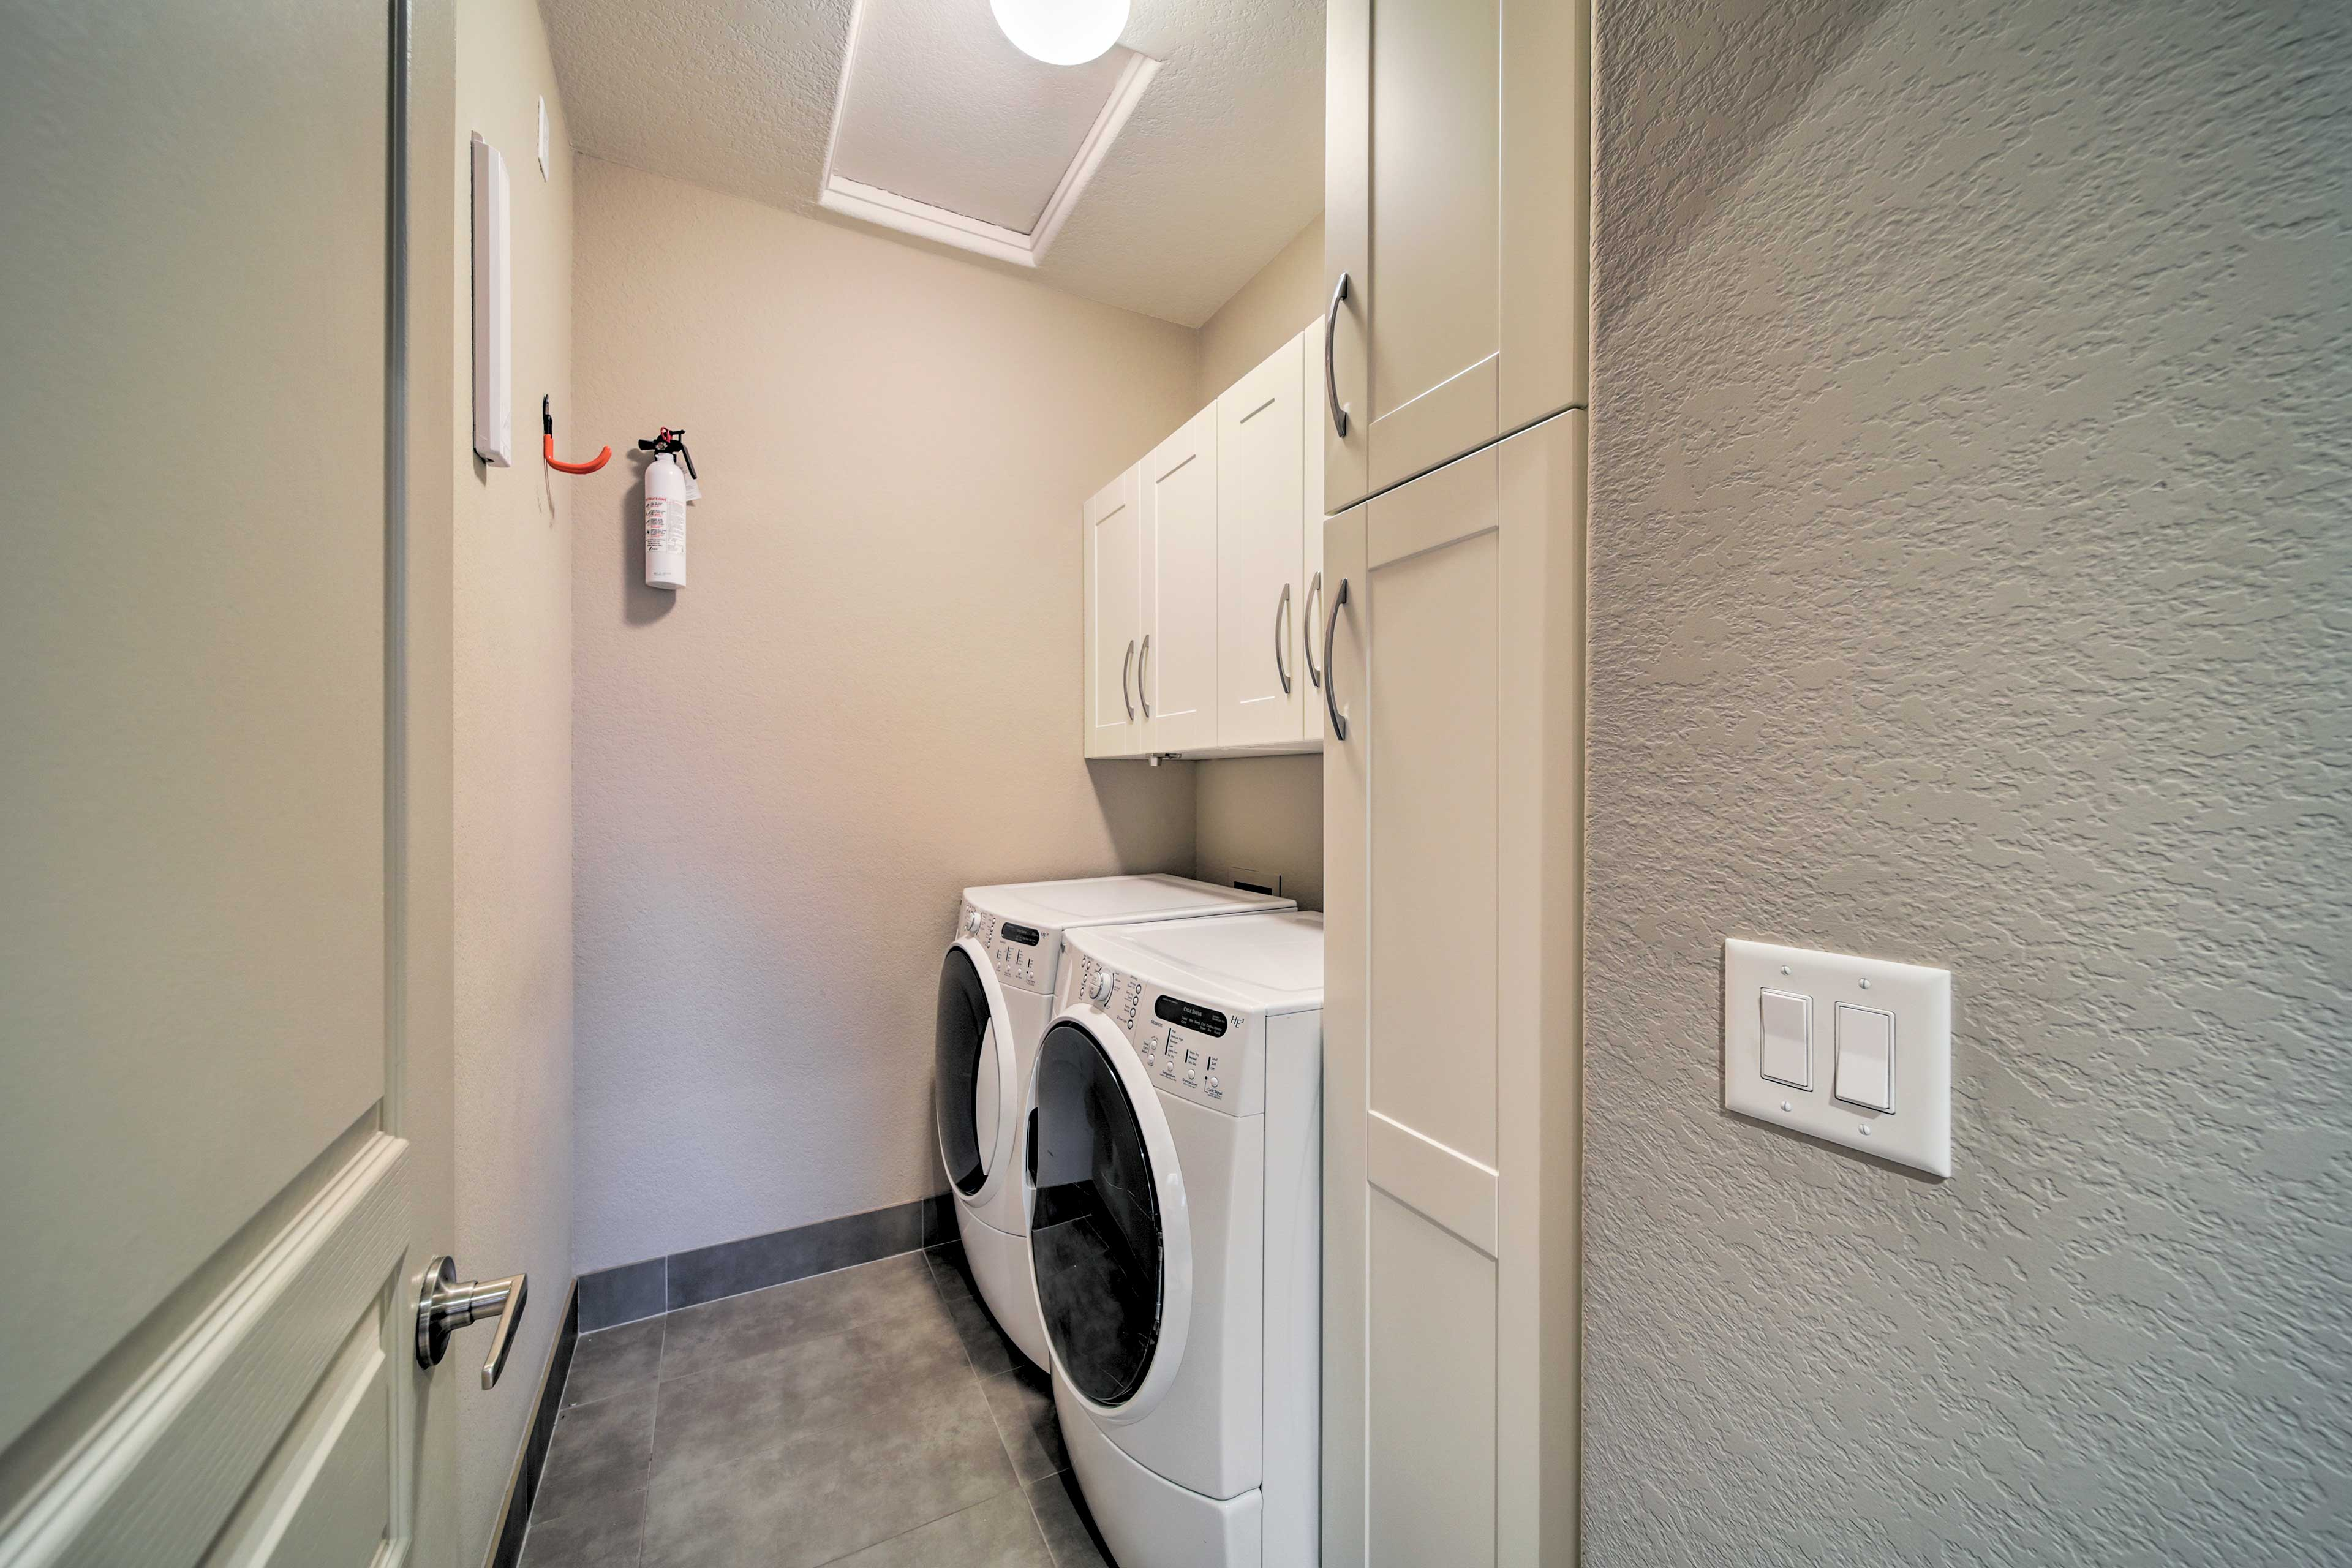 Wash your dirty clothes in the in-unit laundry machines.